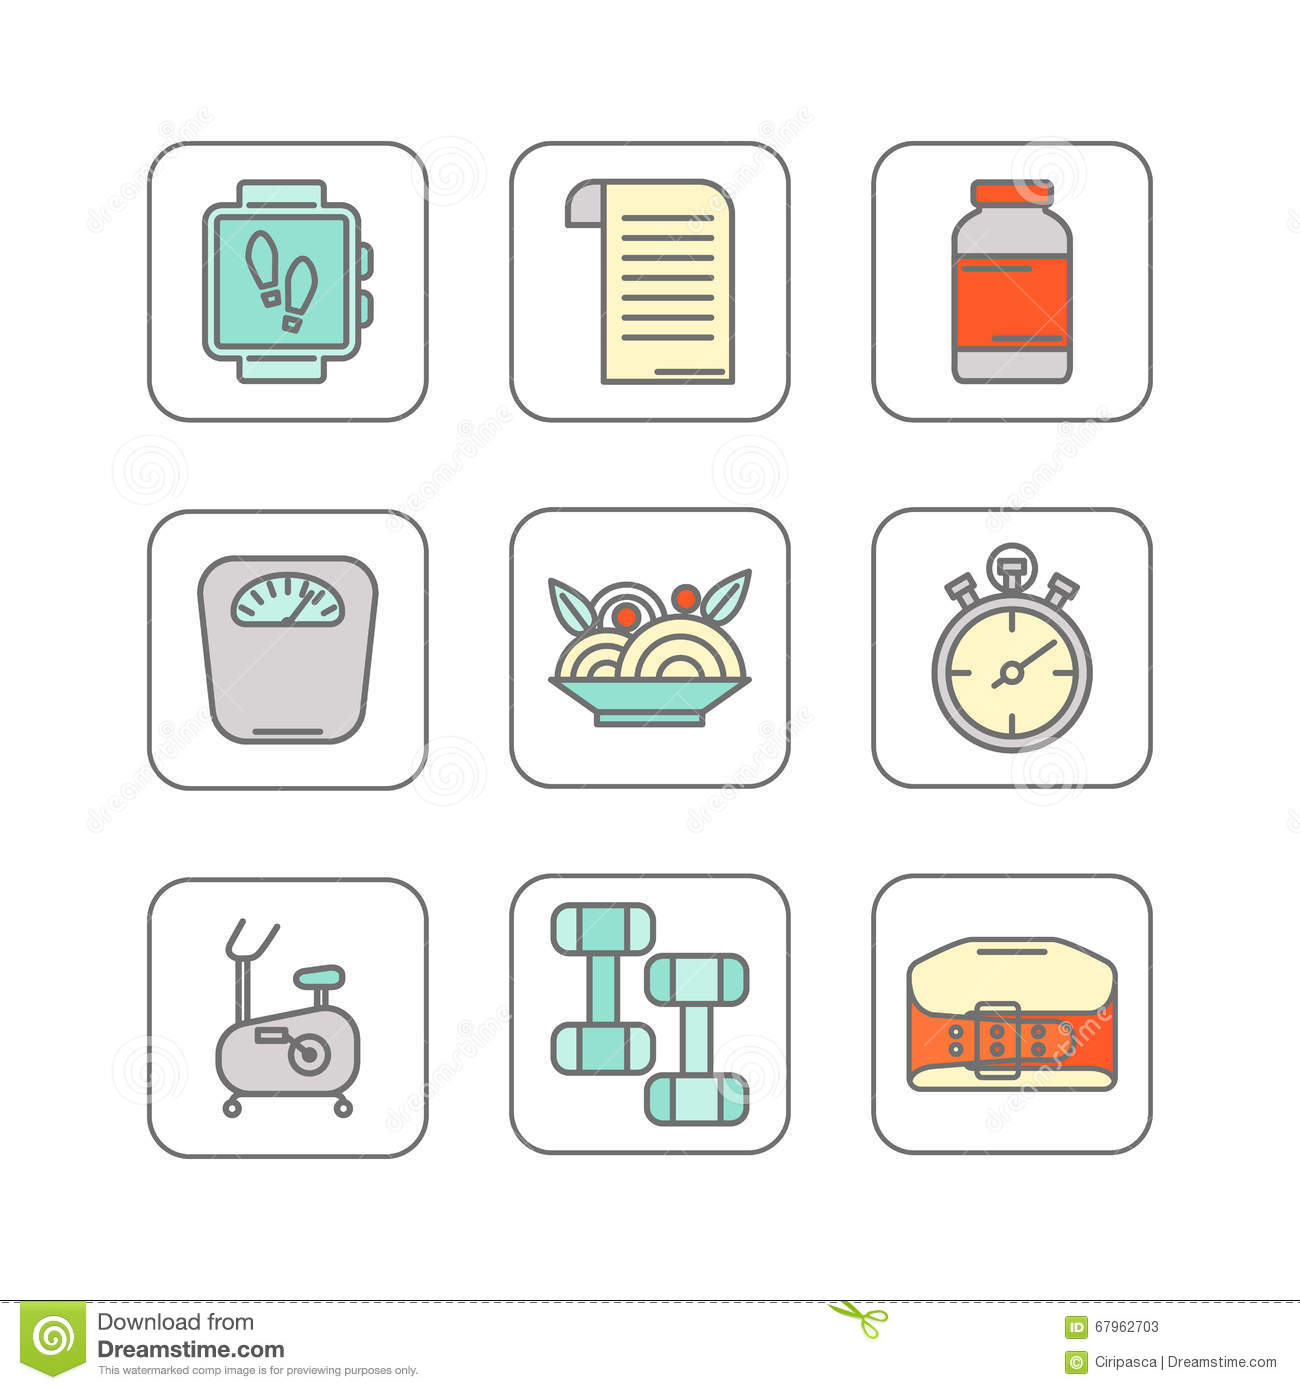 Vector set of color line icons for personal trainer program stock vector set of color line icons for personal trainer program royalty free vector 1betcityfo Images